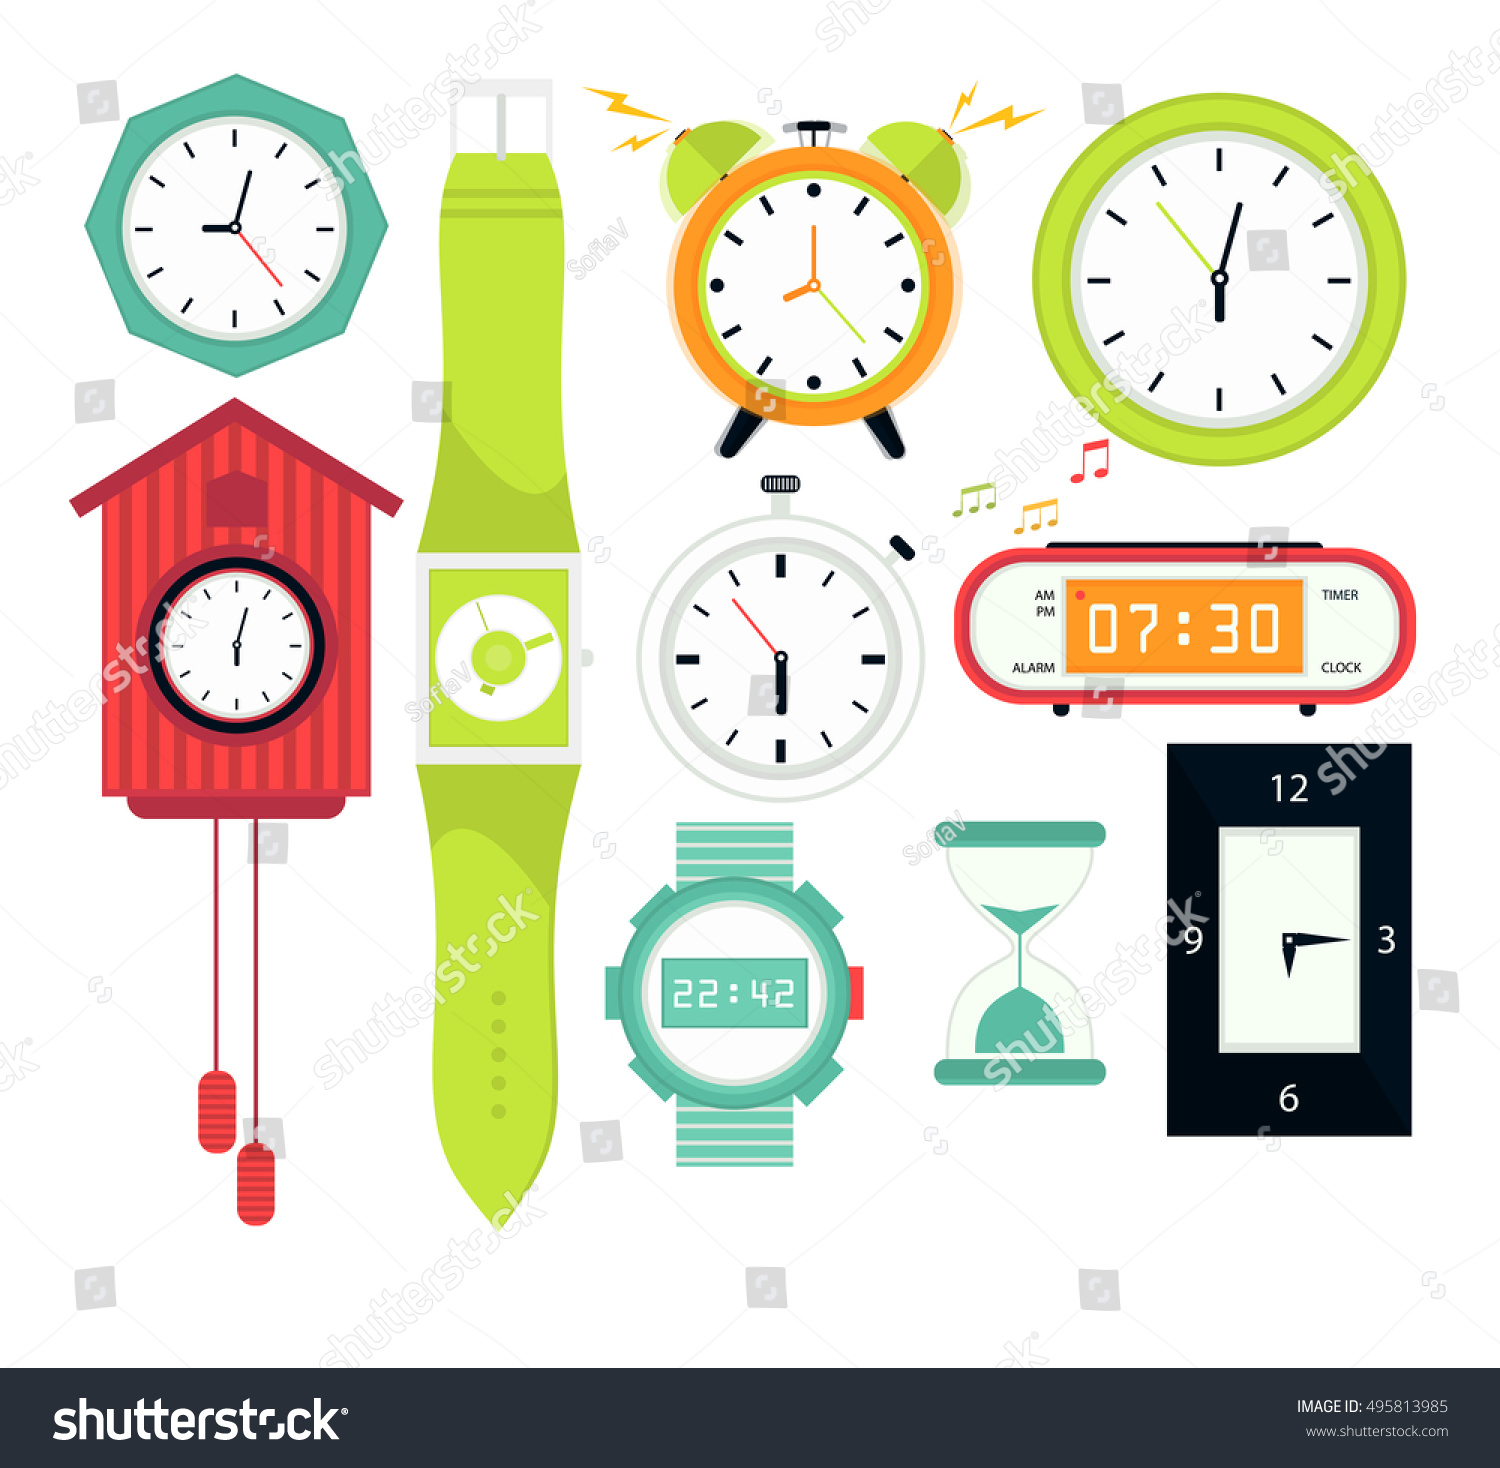 Types alarms clocks digital watch timer stock vector 495813985 types of alarms clocks digital watch and timer stopwatch and hourglass symbol of amipublicfo Choice Image